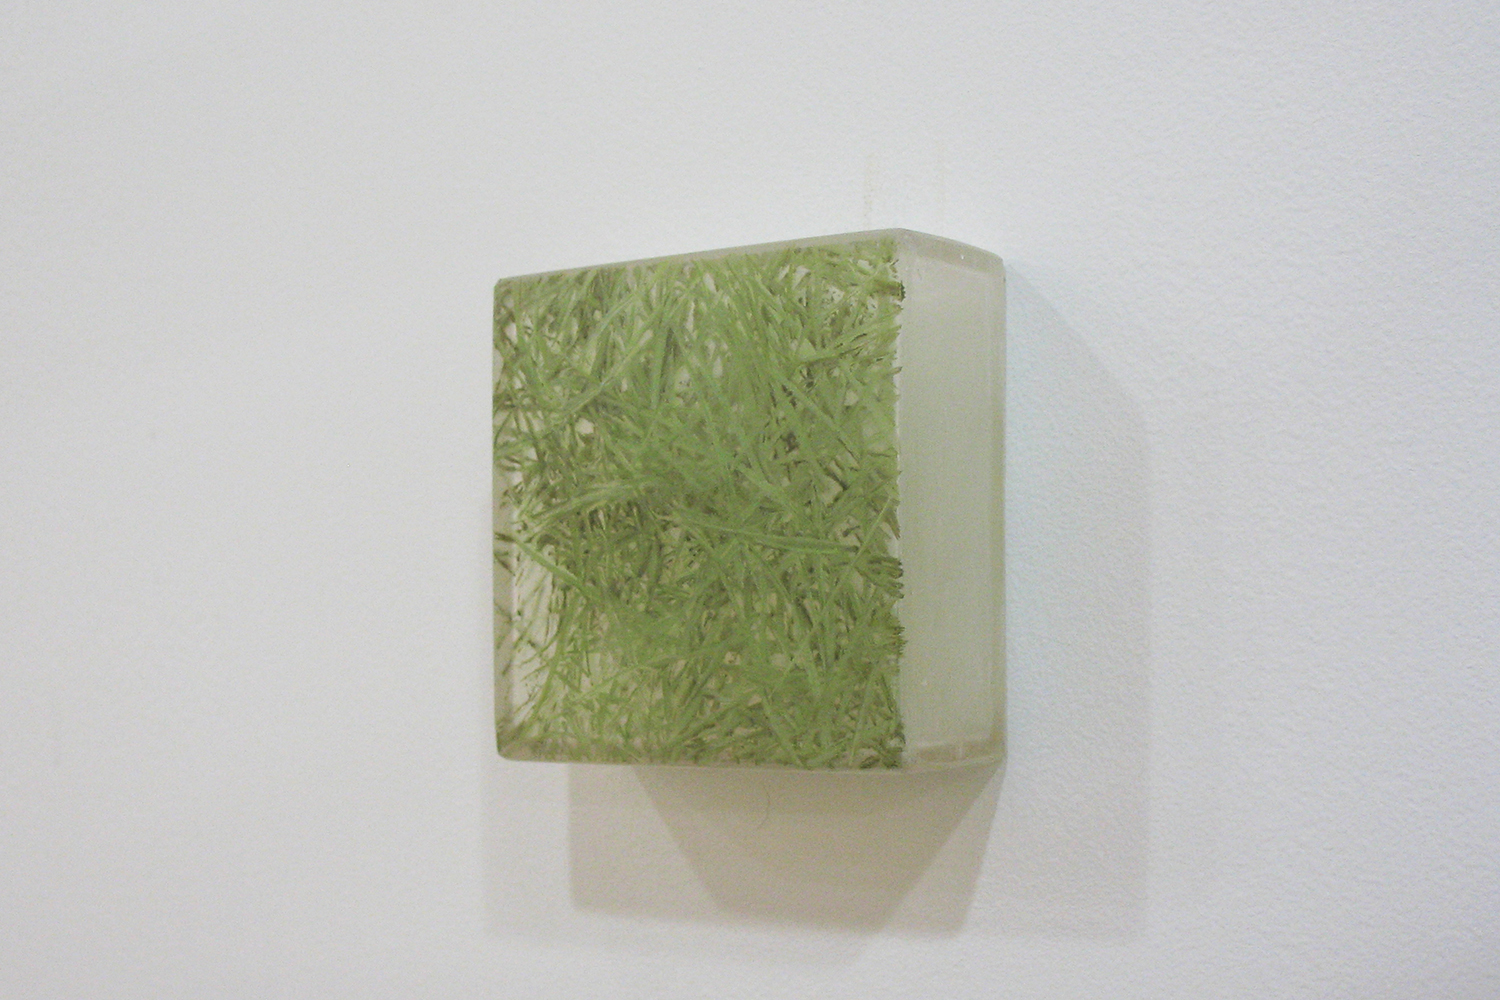 Photo-painting 草上のかおり|Scent on the grass |7.5 x 7.5 x 3 cm|Oil on FRP, mixed media| 2009